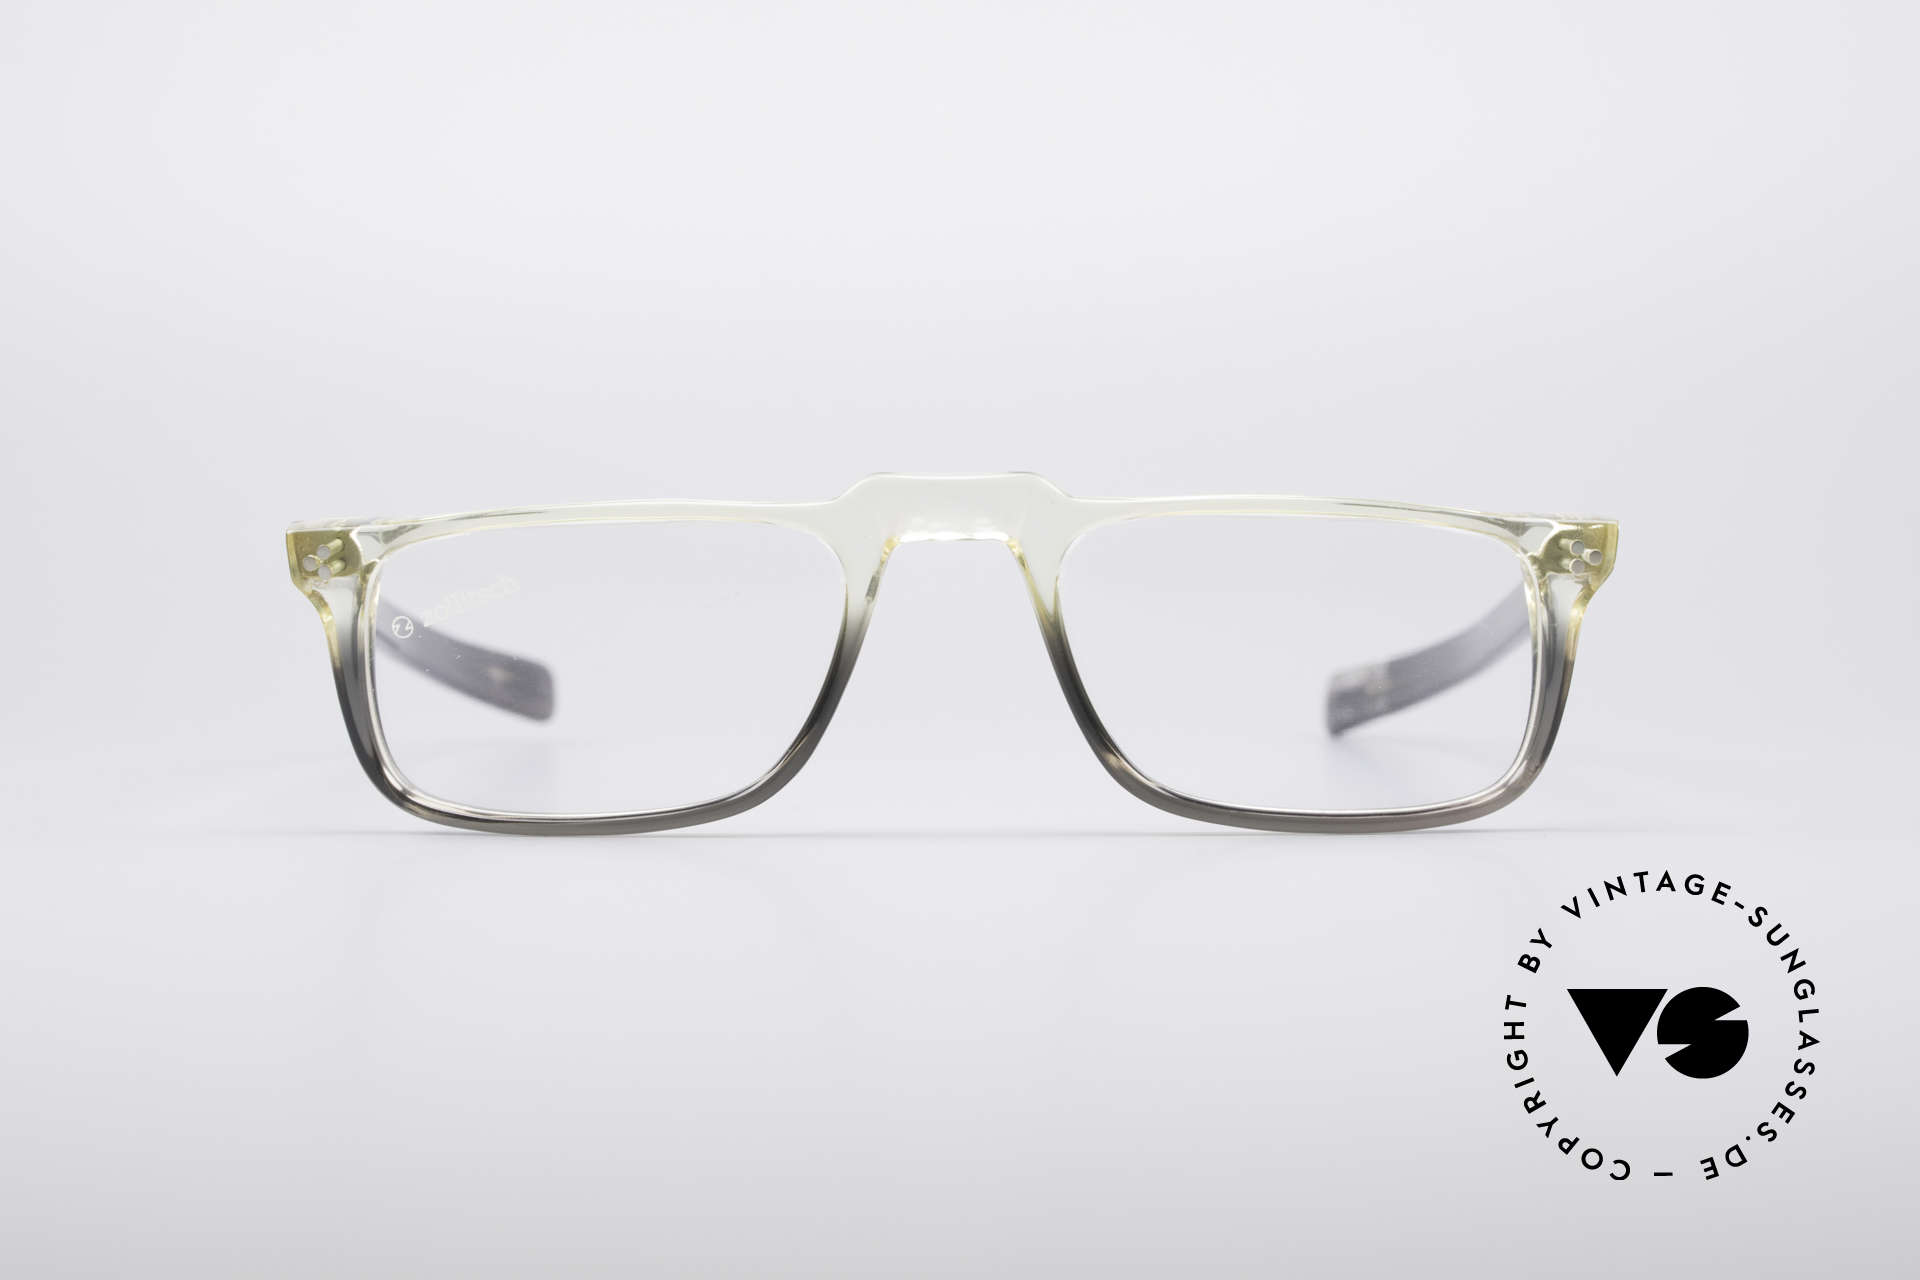 Zollitsch 414 Old 70's Reading Glasses, greenish / grayish coloring (typically 70's fashion), Made for Men